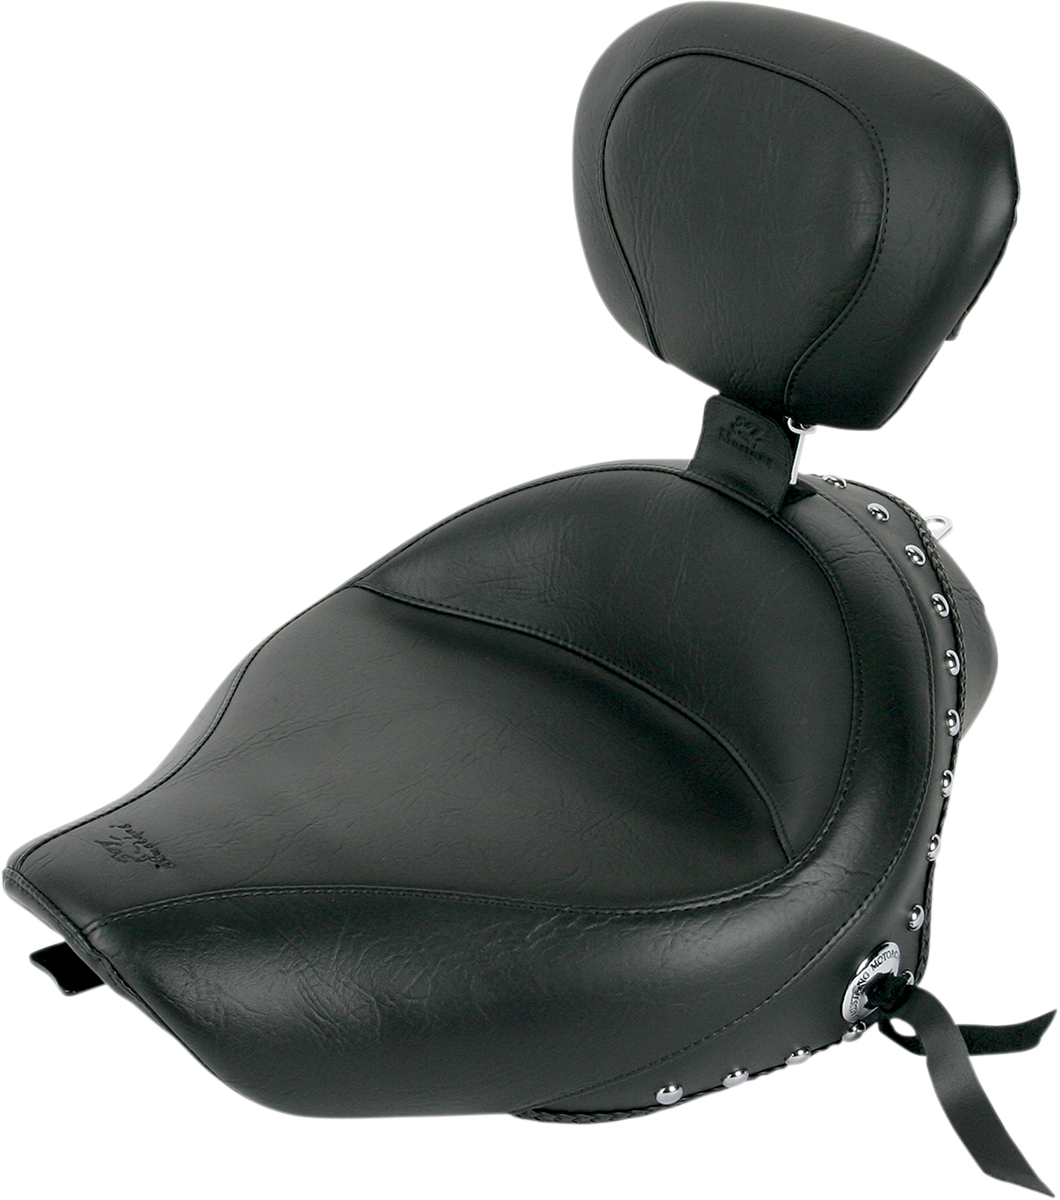 Mustang Wide Studded Motorcycle Solo Seat & Backrest 04-19 Harley Sportster XL